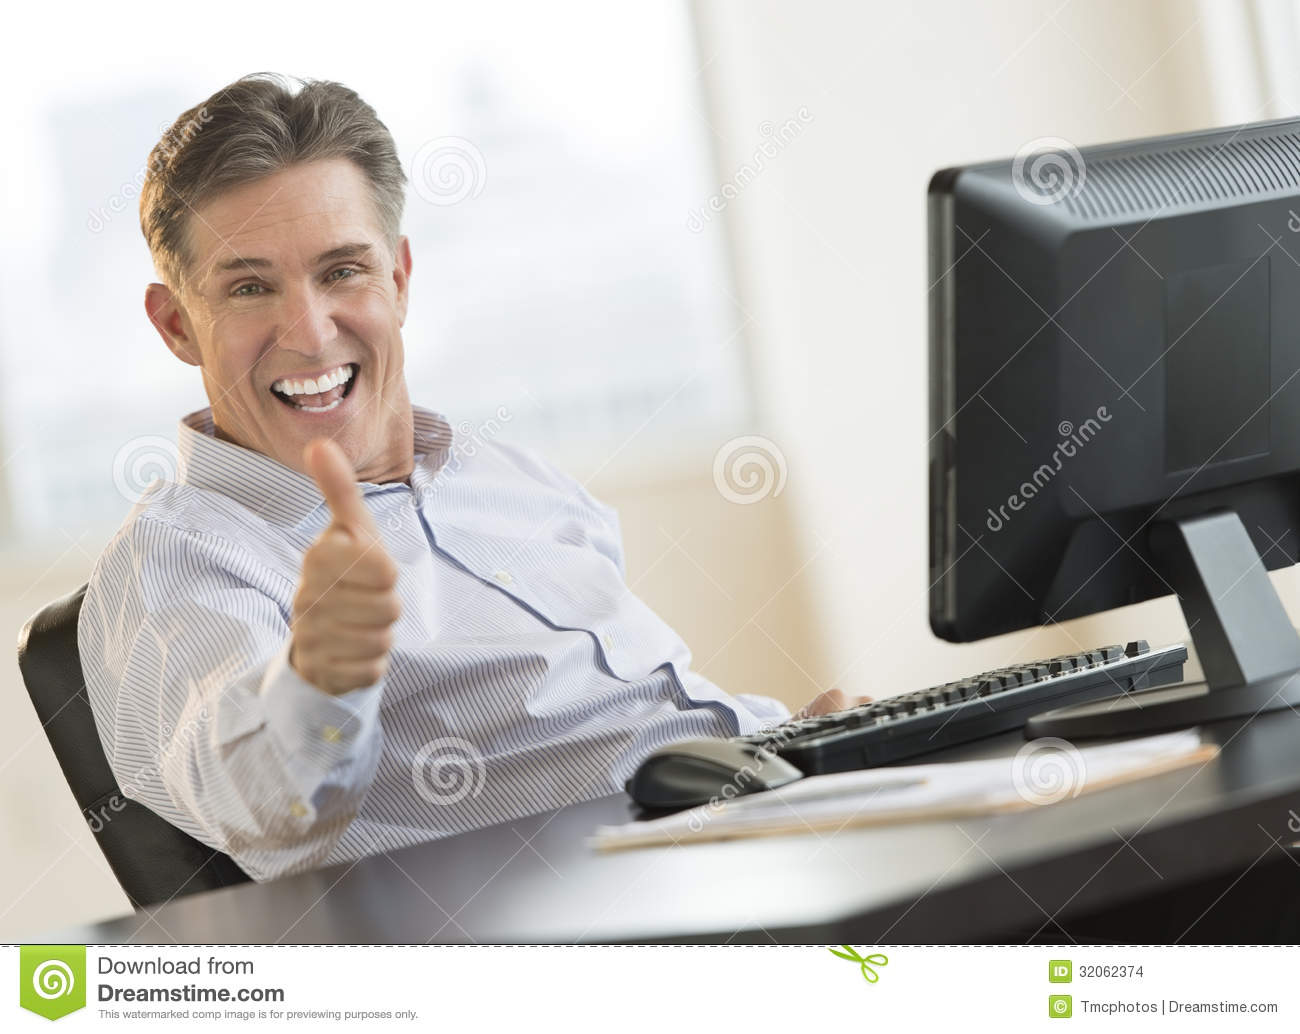 Businessman Gesturing Thumbs Up At Desk Stock Images - Image: 32062374